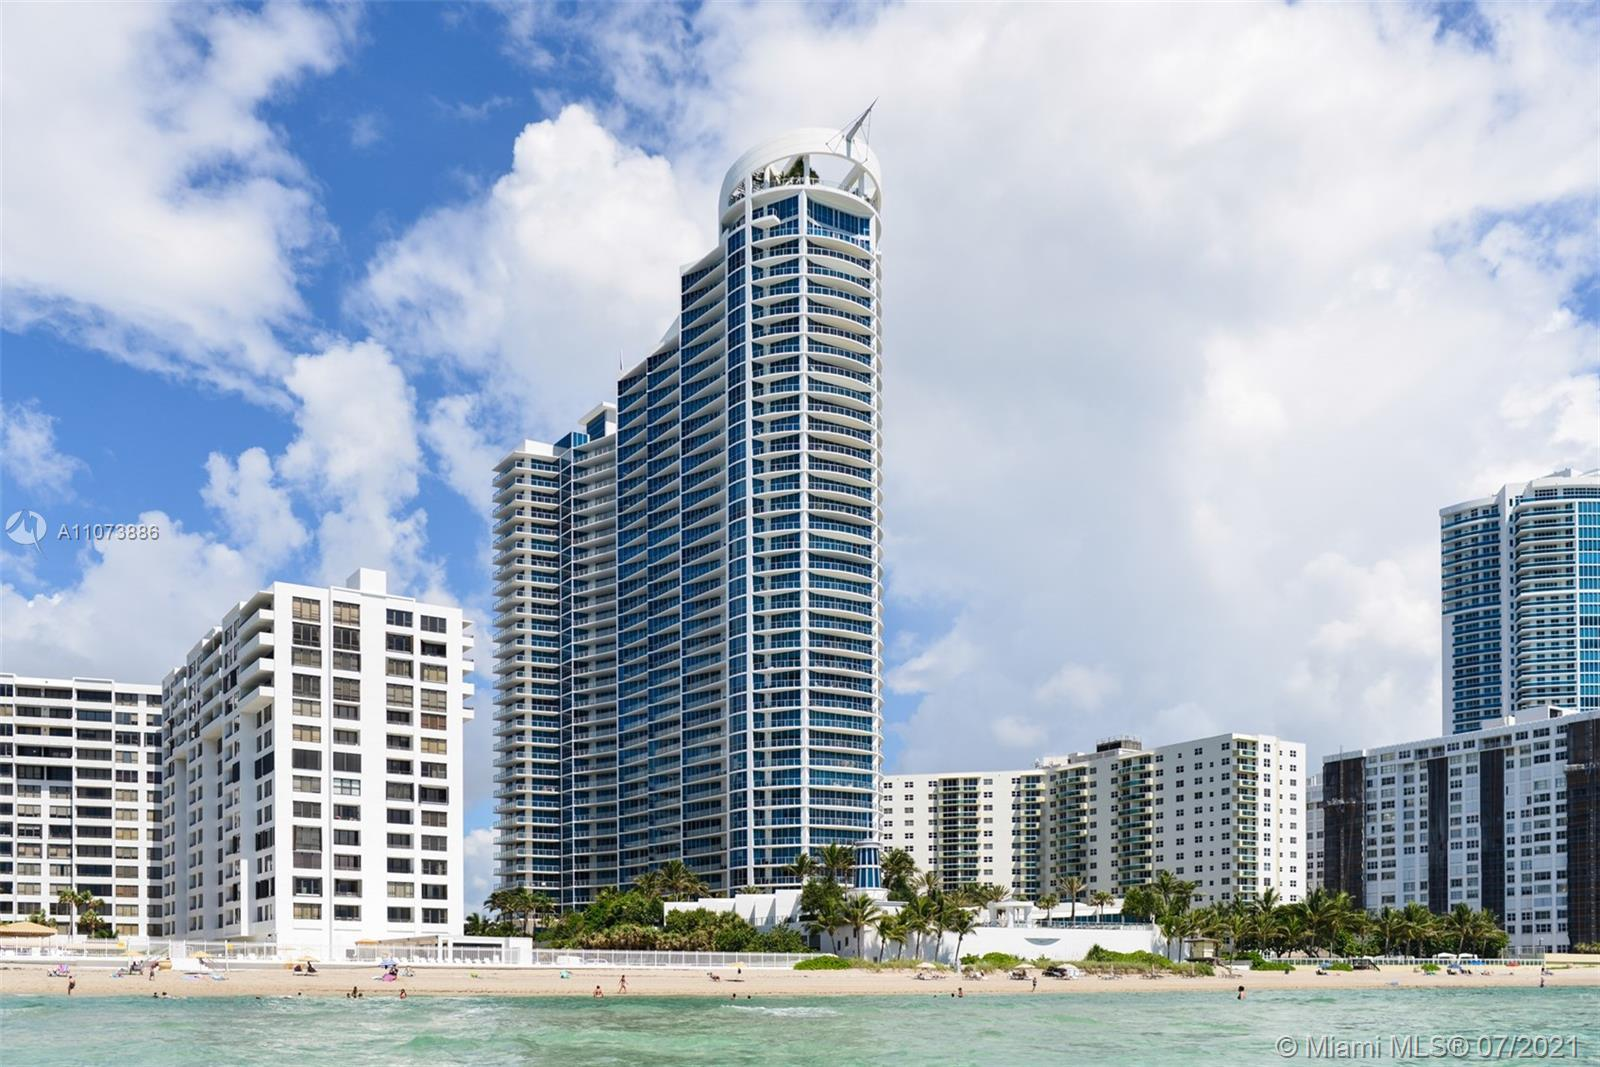 OCEAN FRONT RESORT STYLE IN THE OCEAN PALMS, HOLLYWOOD BEACH. ENJOY THE VIEW AND BREEZE OF THE OCEAN